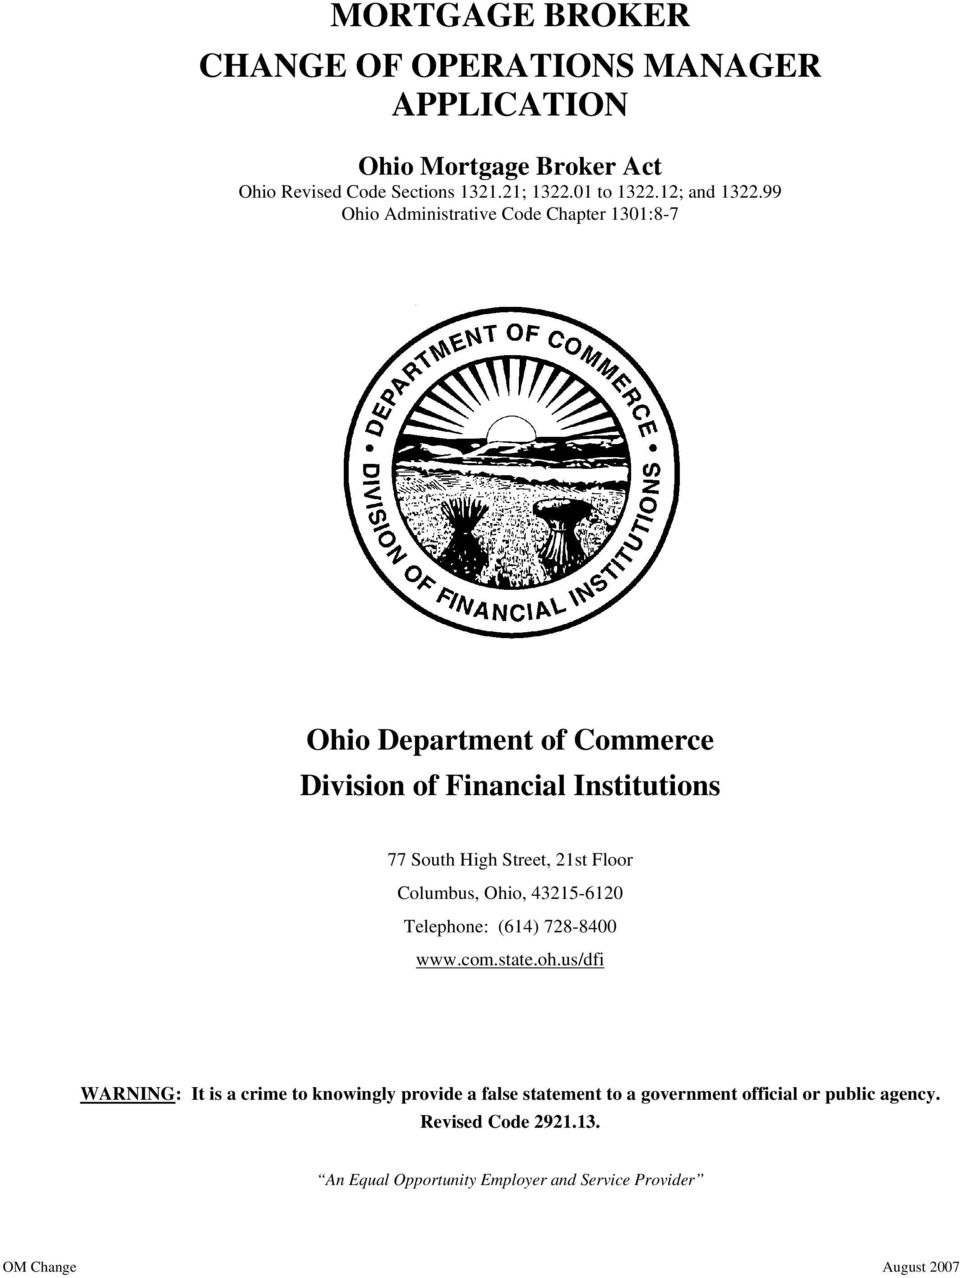 99 Ohio Administrative Code Chapter 1301:8-7 Ohio Department of Commerce Division of Financial Institutions 77 South High Street, 21st